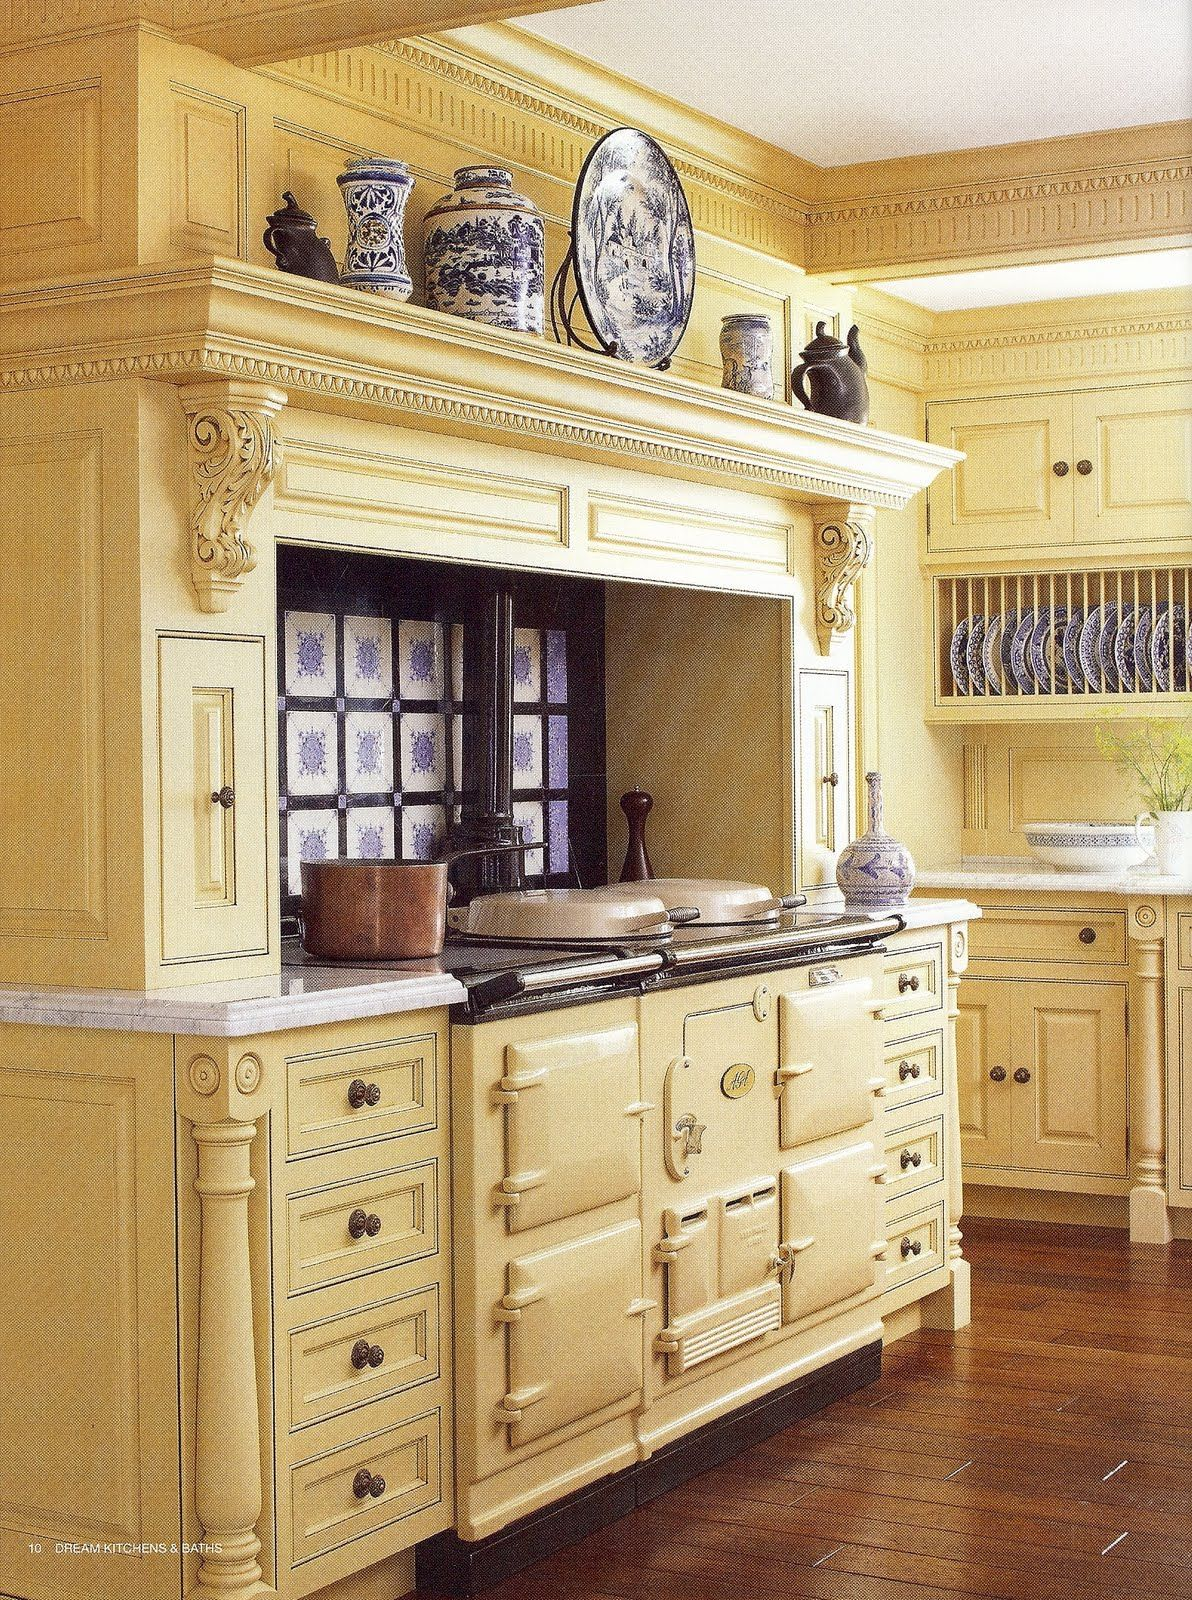 Covenant Kitchens Baths Inc Best Of The Best Old World Meets New World English Country Kitchens Country Kitchen Designs Country Style Kitchen